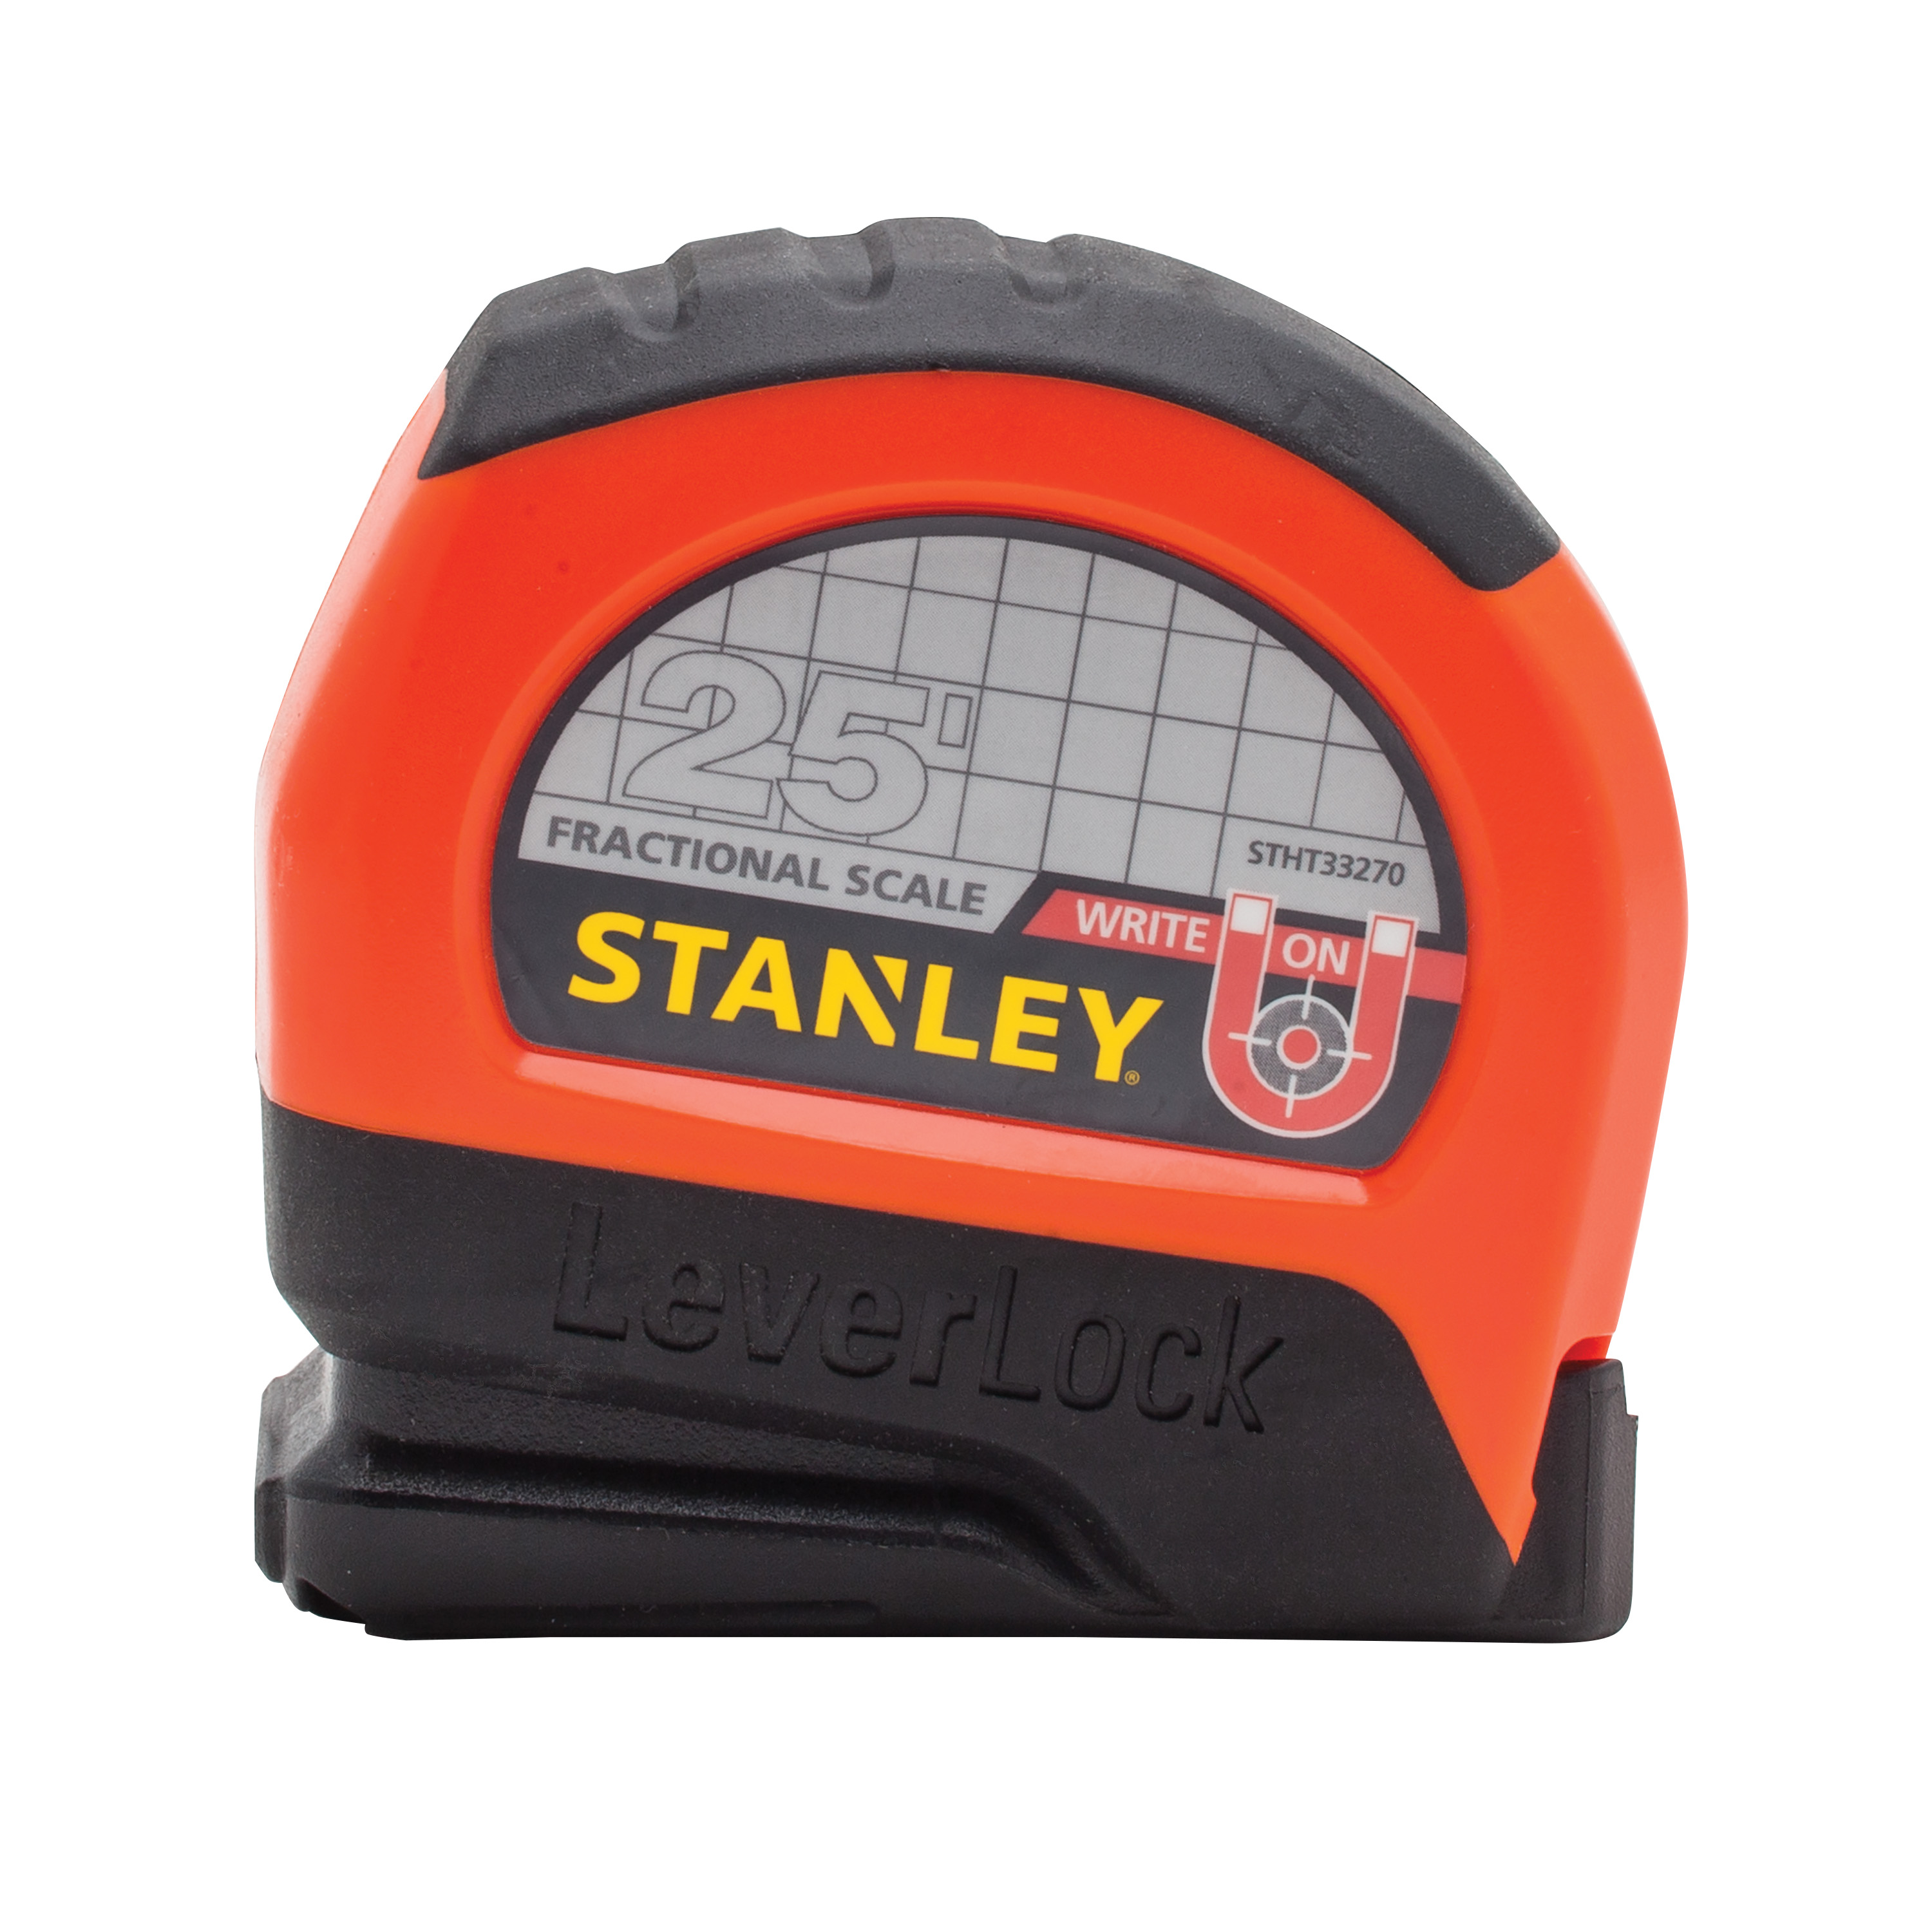 STANLEY® STHT33270 25' LeverLock® Magnetic Fractional Tape Measure